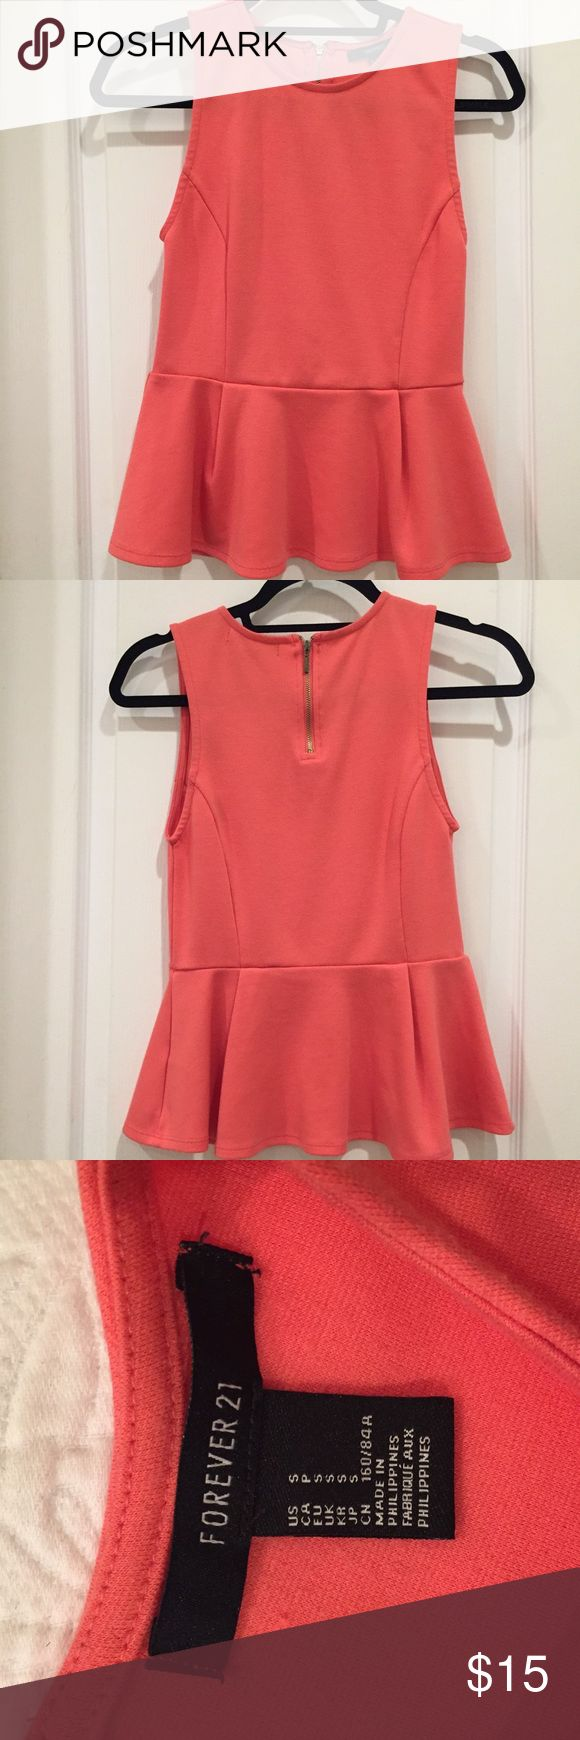 Peplum Top Forever 21 salmon colored peplum top. Size small. Zip closure in back. Forever 21 Tops